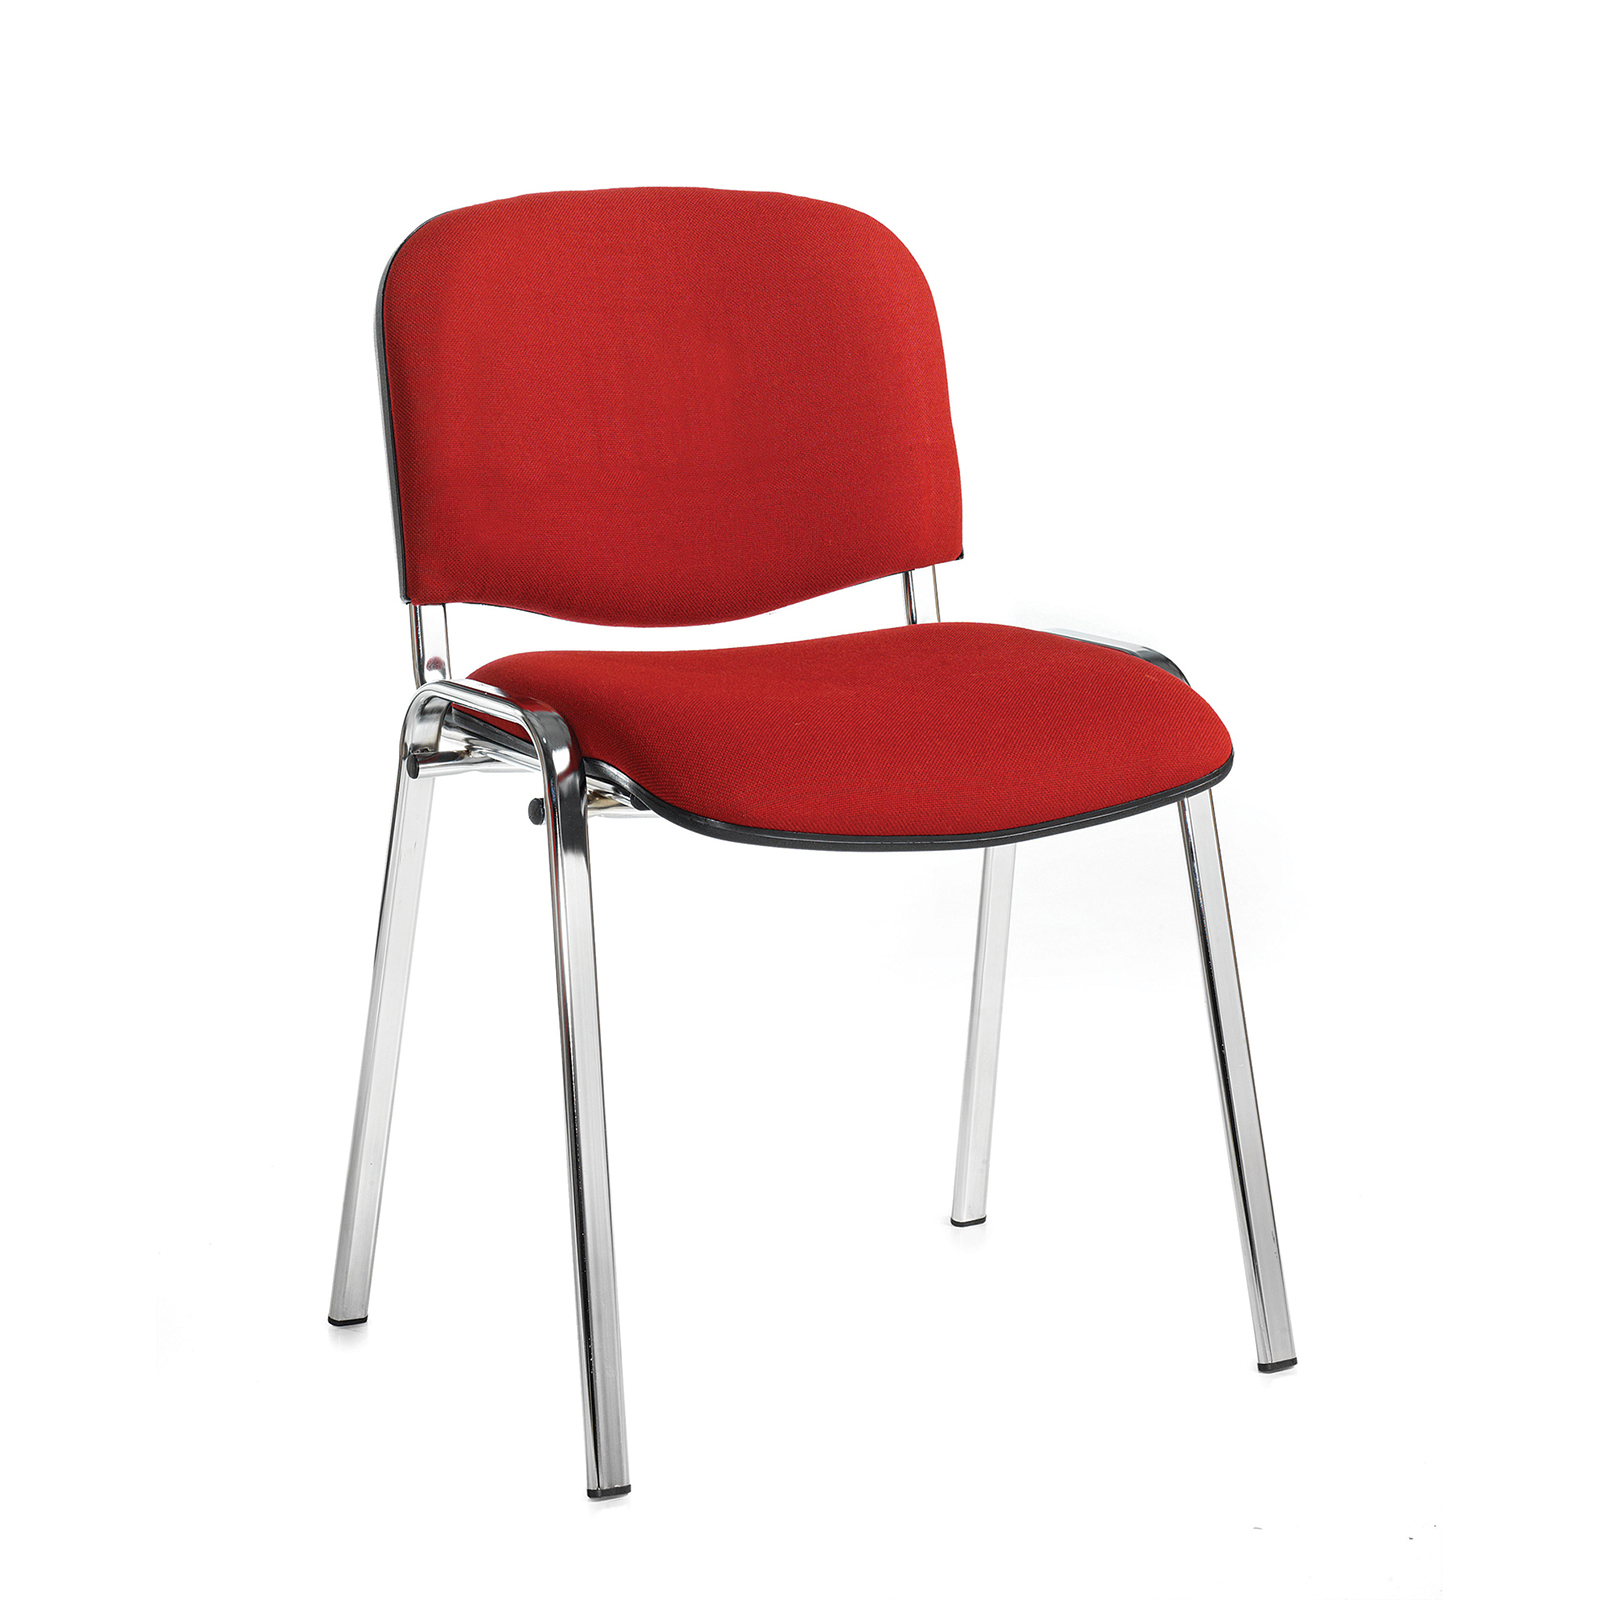 Boardroom / Meeting Taurus meeting room stackable chair with chrome frame and no arms - burgundy